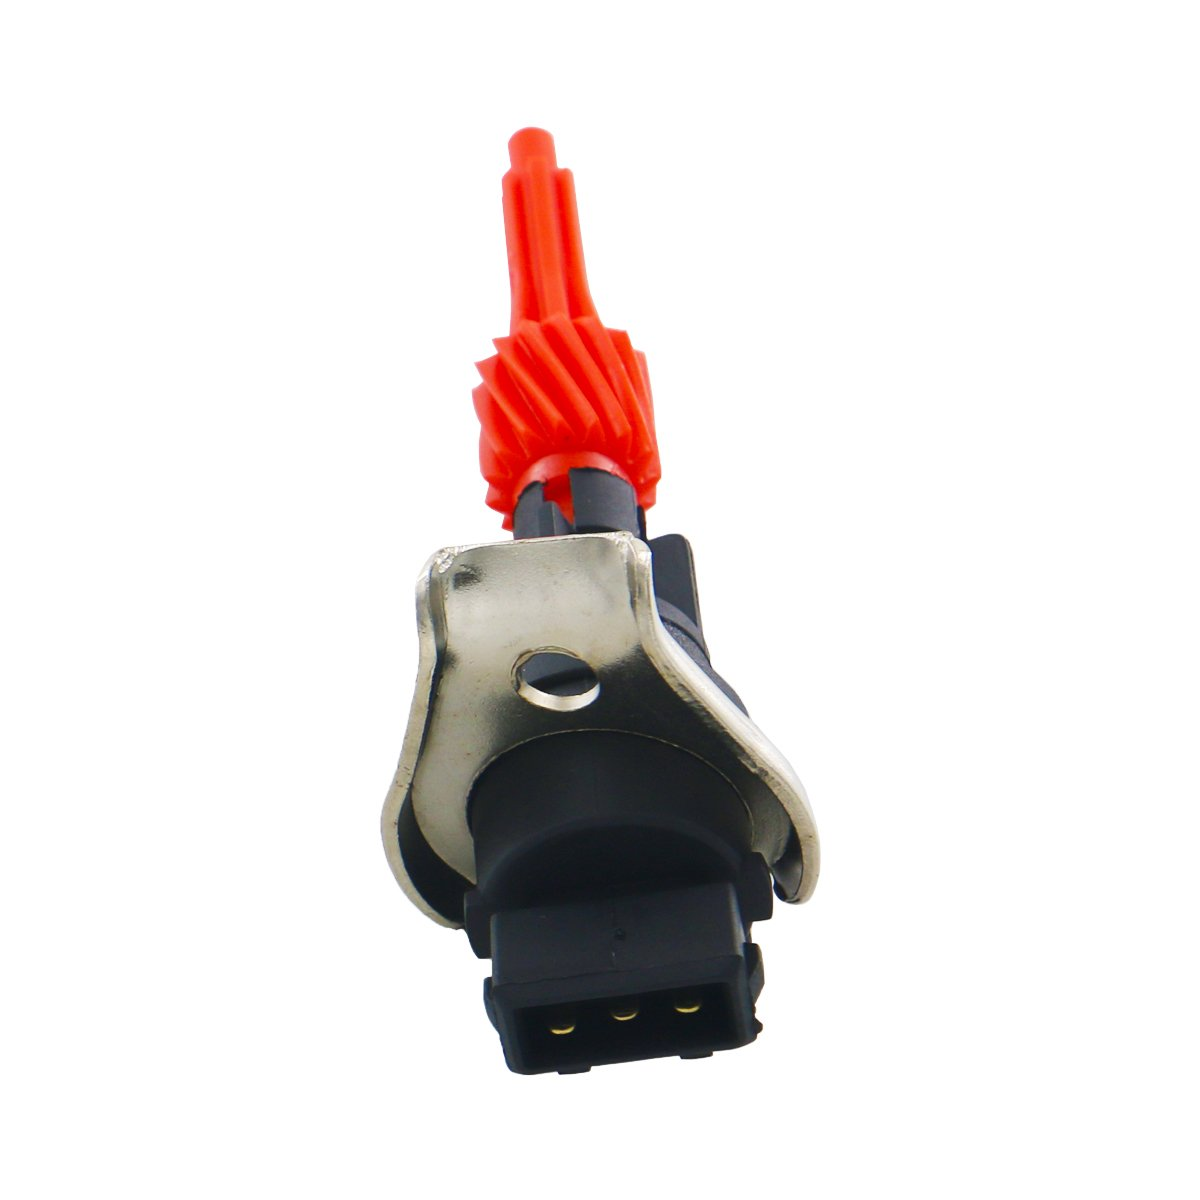 MUCO New VW Volkswagen Speed Impulse Sensor Output For 93-02 Cabrio Golf Jetta 1H0919149A